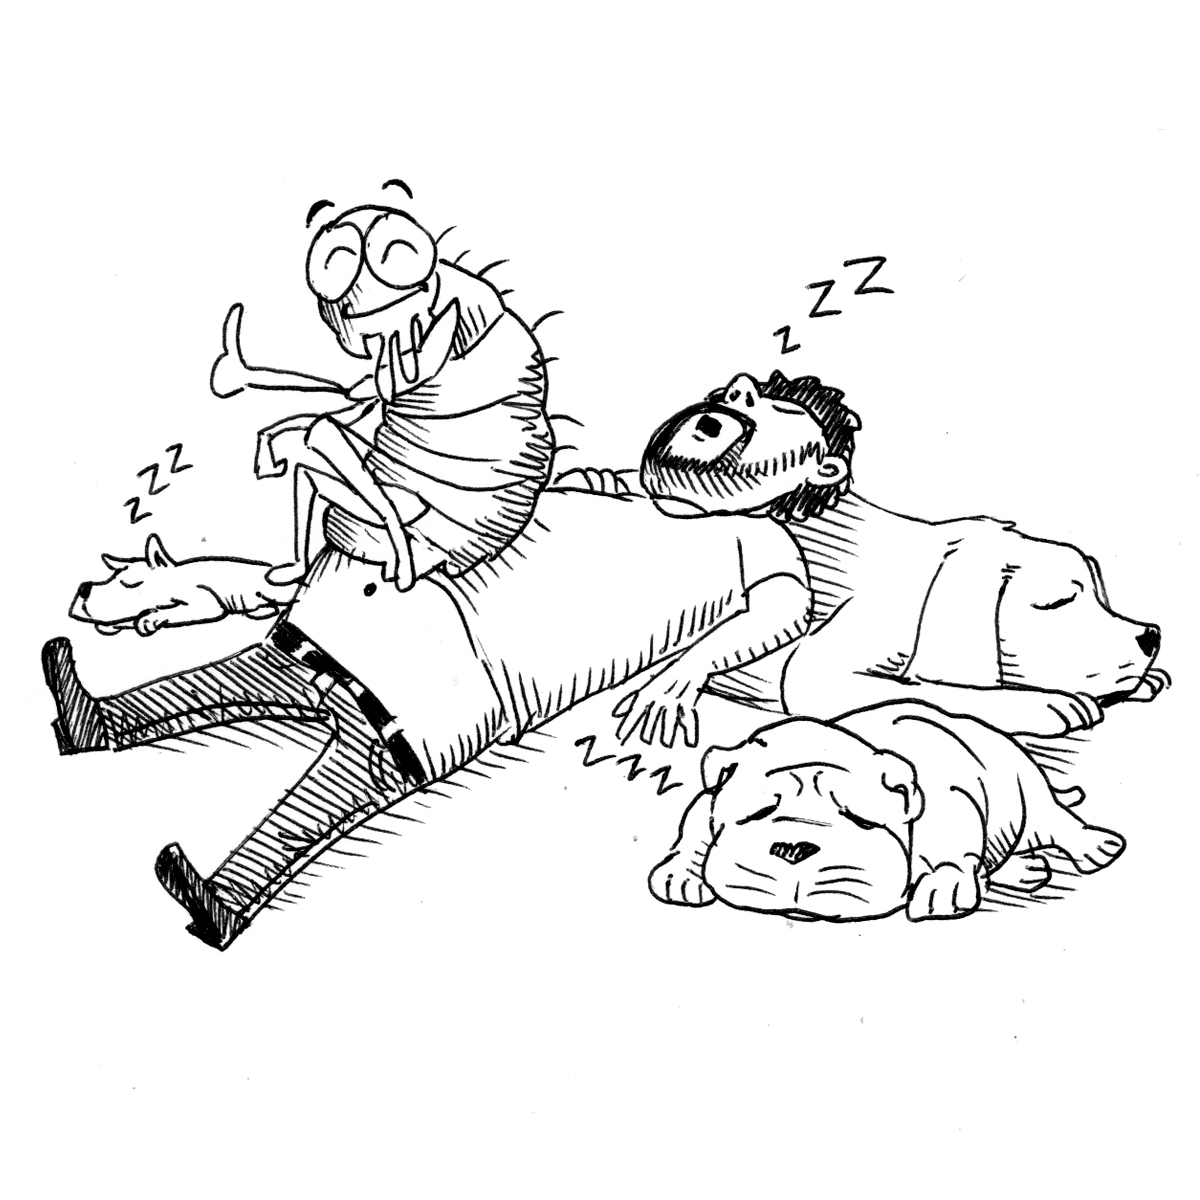 He who sleeps with dogs will rise up with fleas